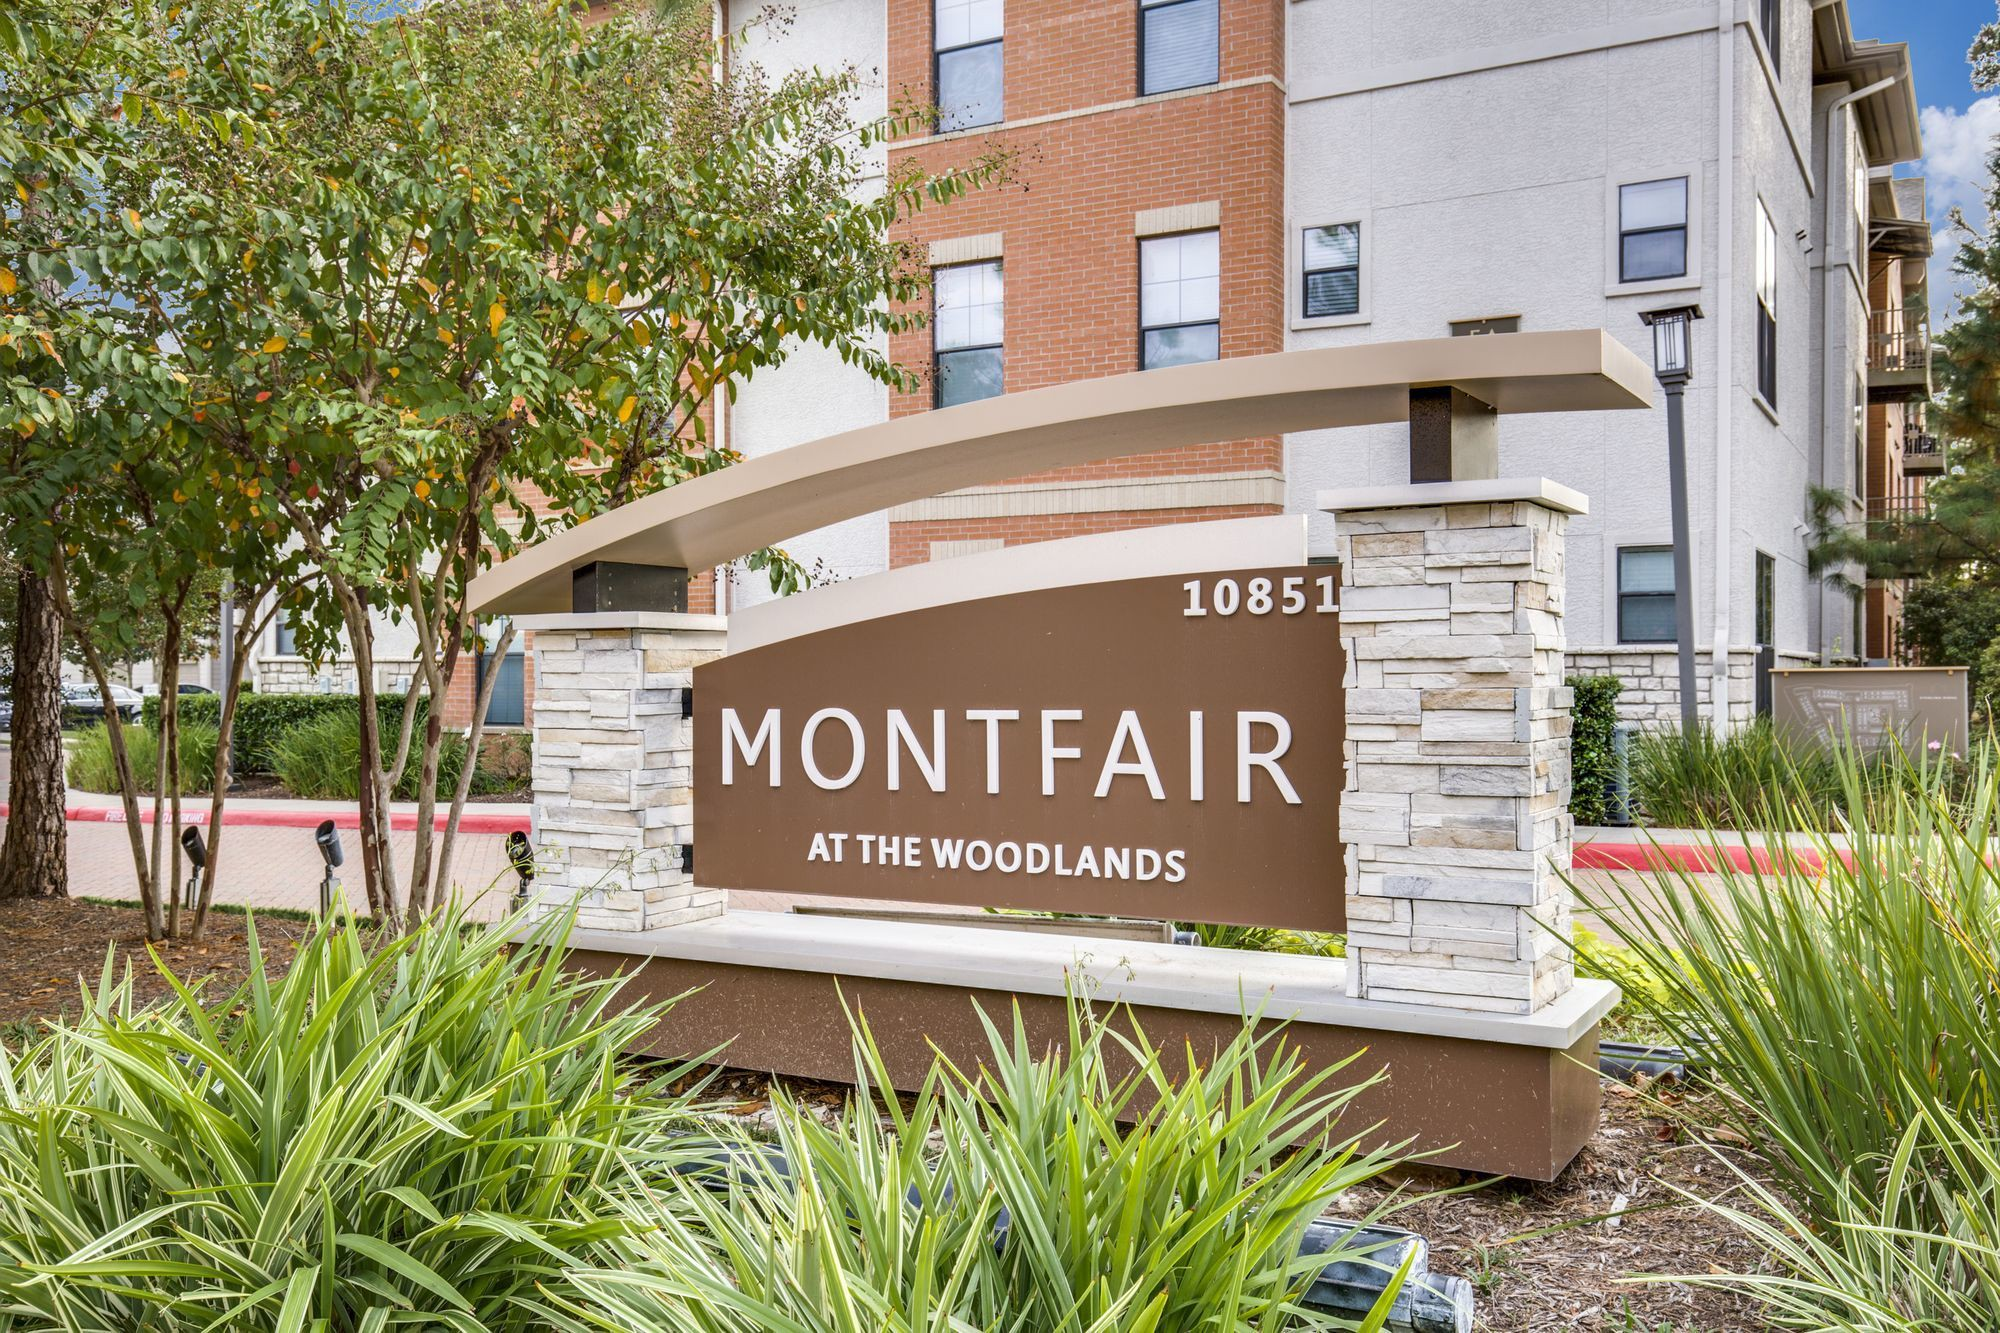 Montfair at The Woodlands